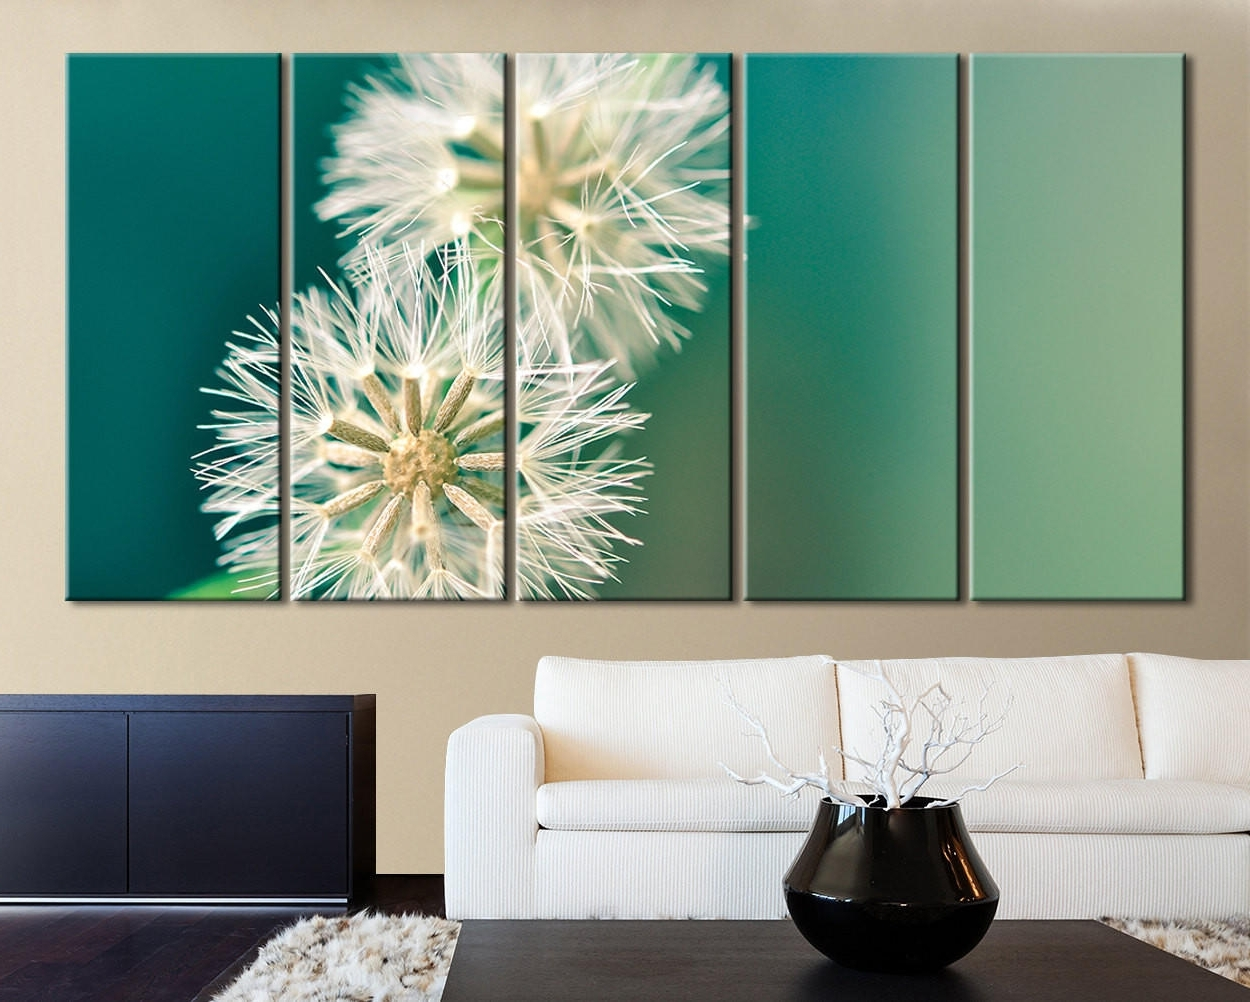 Xxl 5 Panel Wall Art Canvas Print From Mycanvasprint With Regard To Well  Known Dandelion Canvas